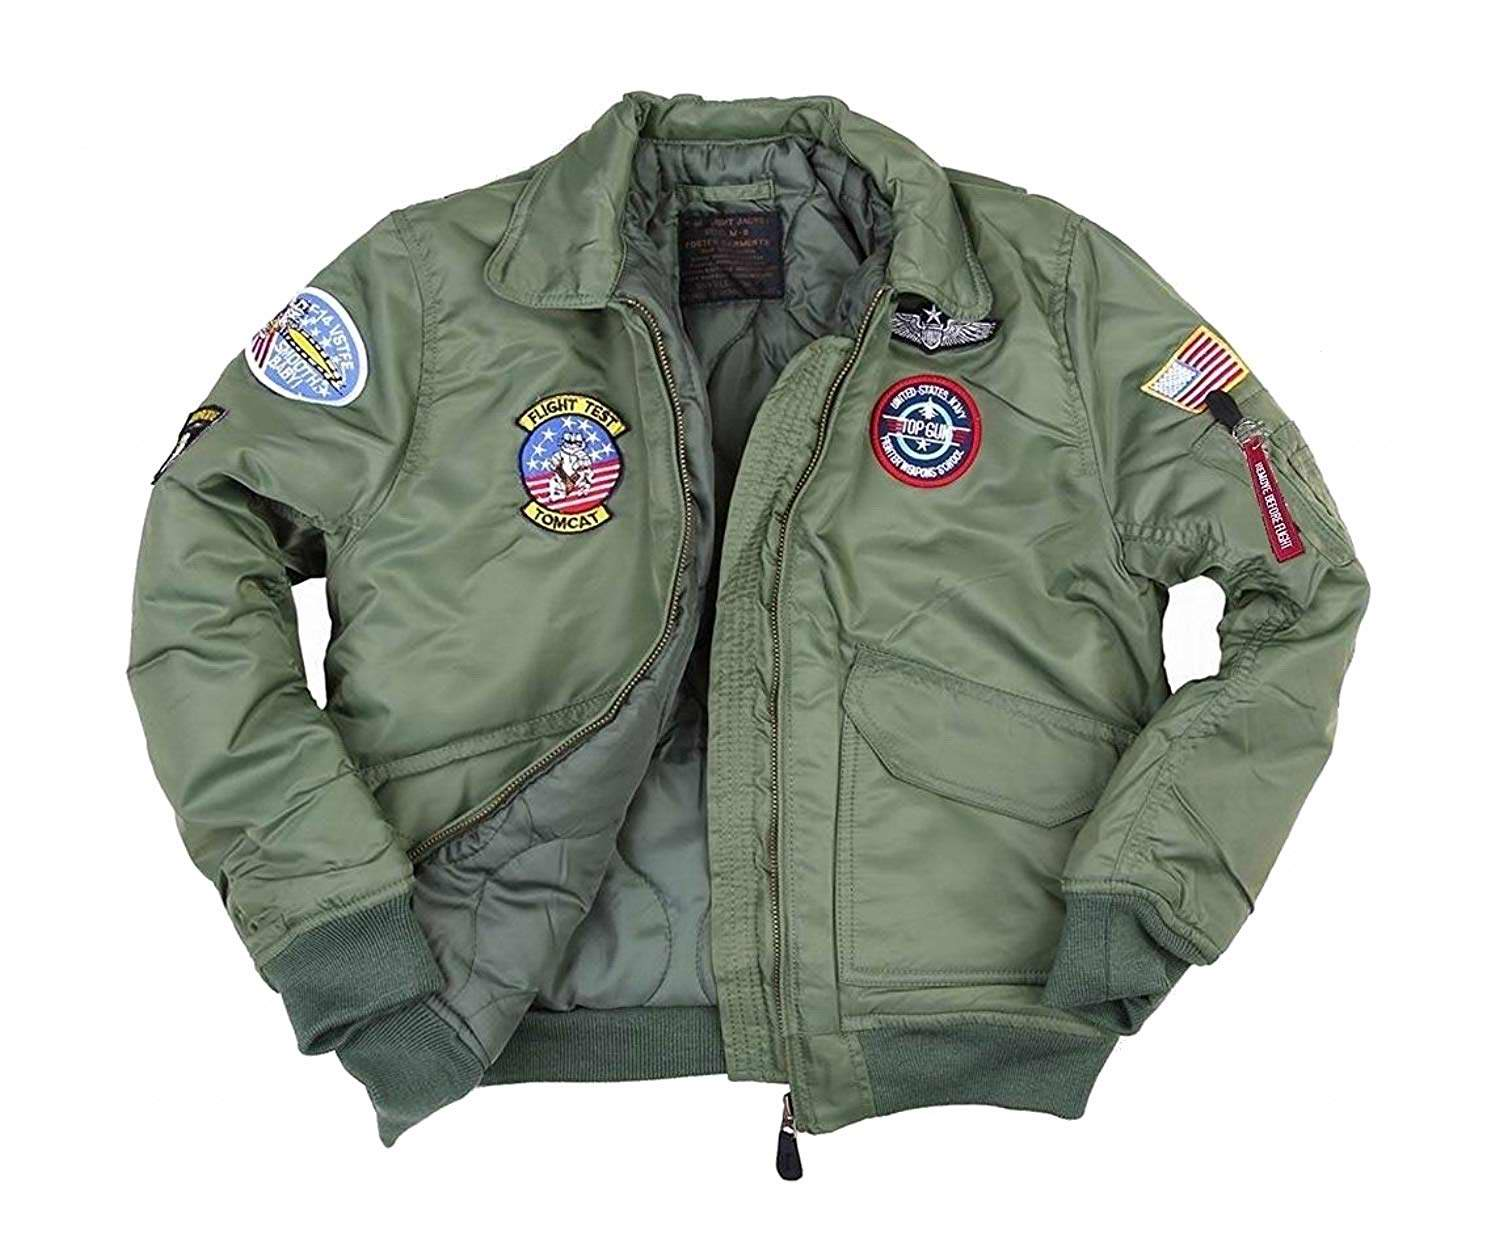 CHILD TOP GUN B-52 Flight Jacket